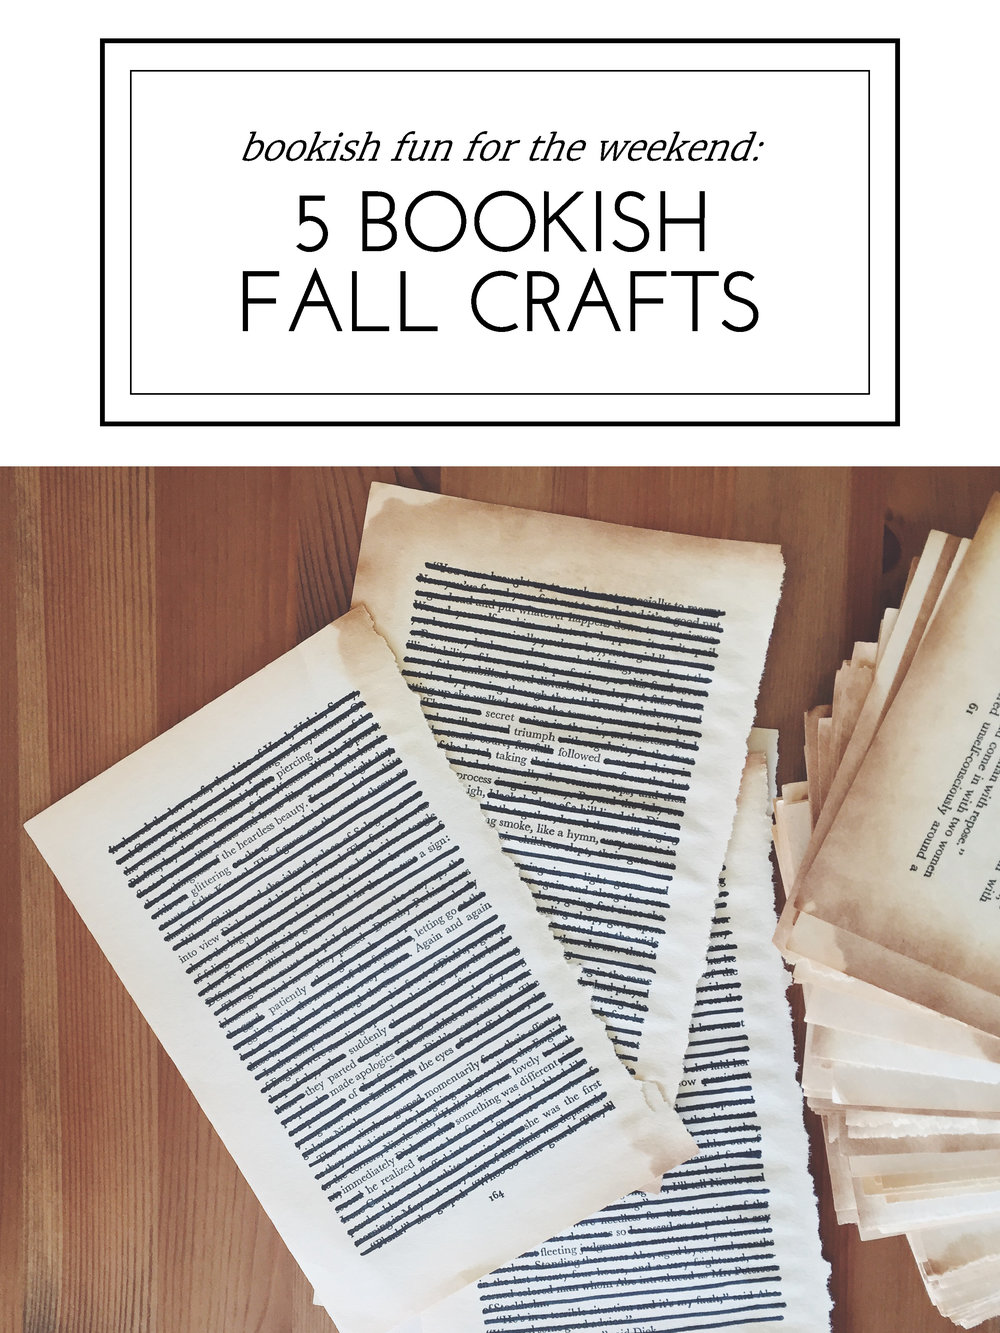 Blessed Bookworm's Bookish Fun for the Weekend: 5 Bookish Fall Crafts